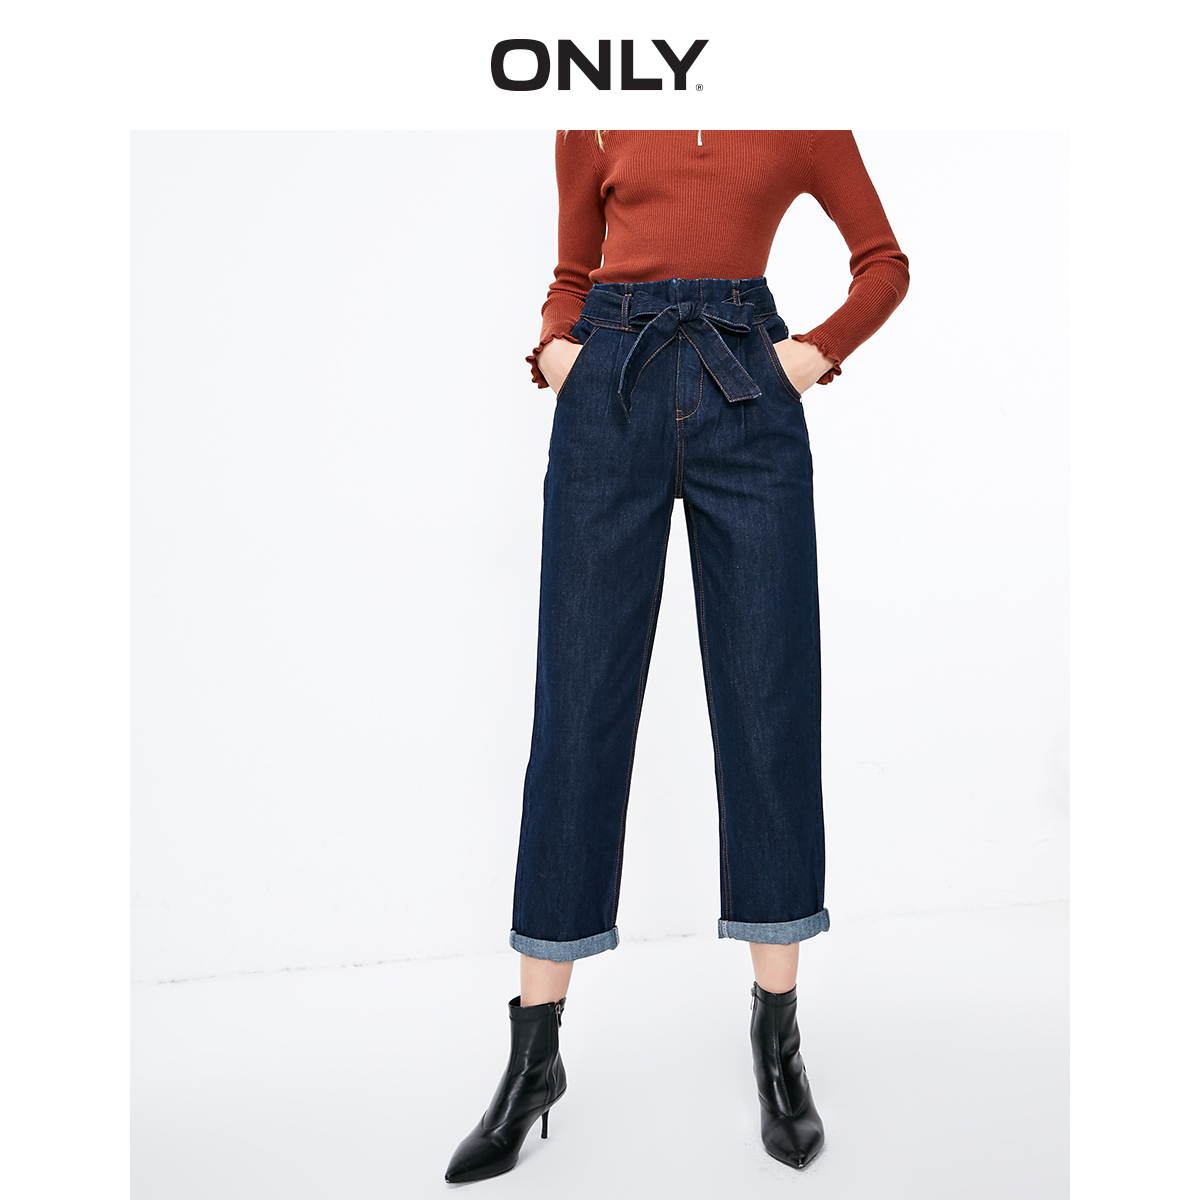 ONLY Women's Loose Fit High-rise Crop Jeans | 119149585